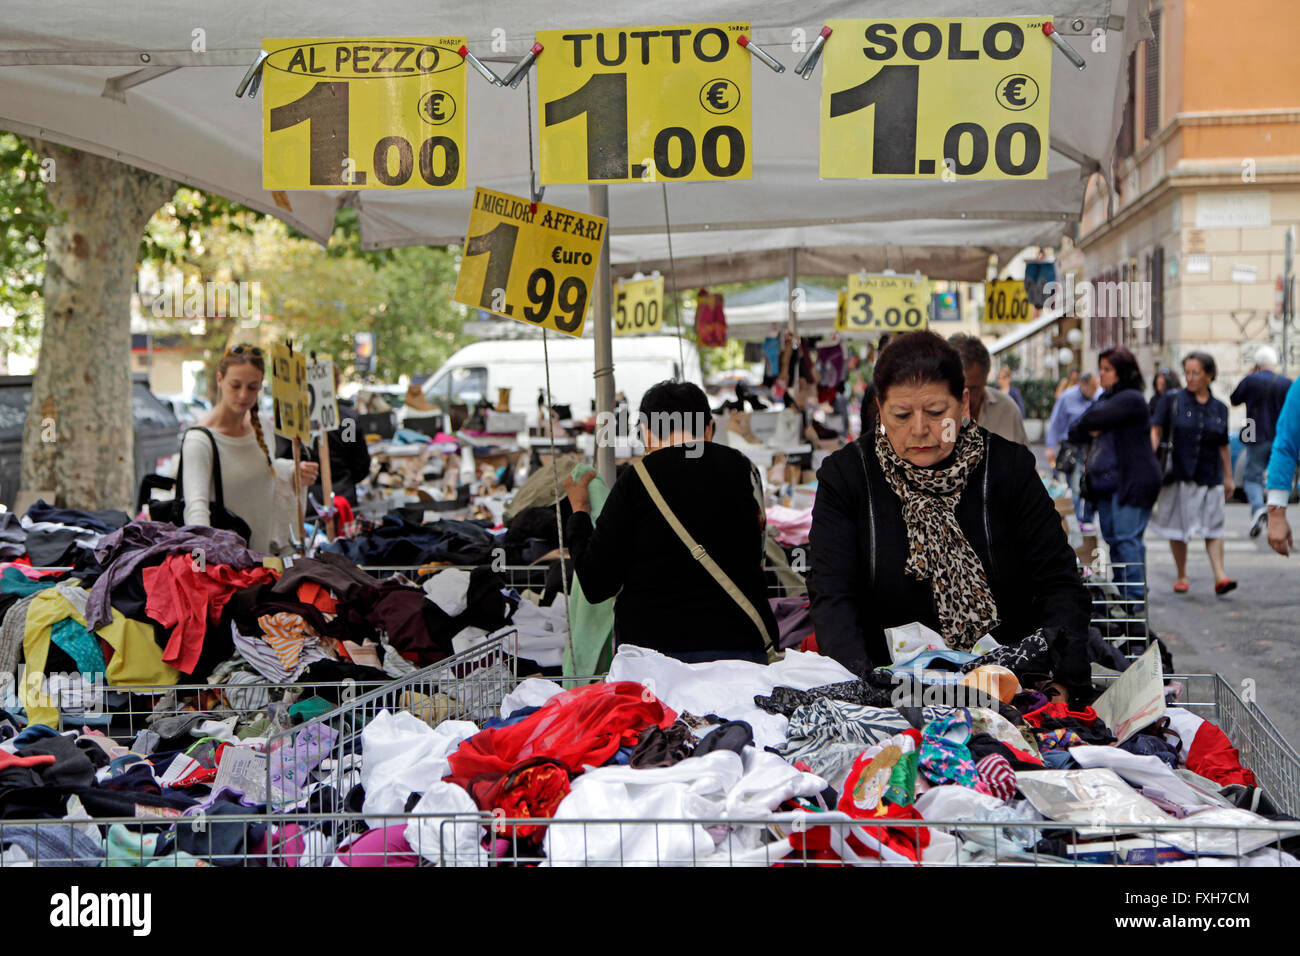 Price signs display the cost in euros of clothes on a stall at an outdoor market in Rome, Italy - Stock Image